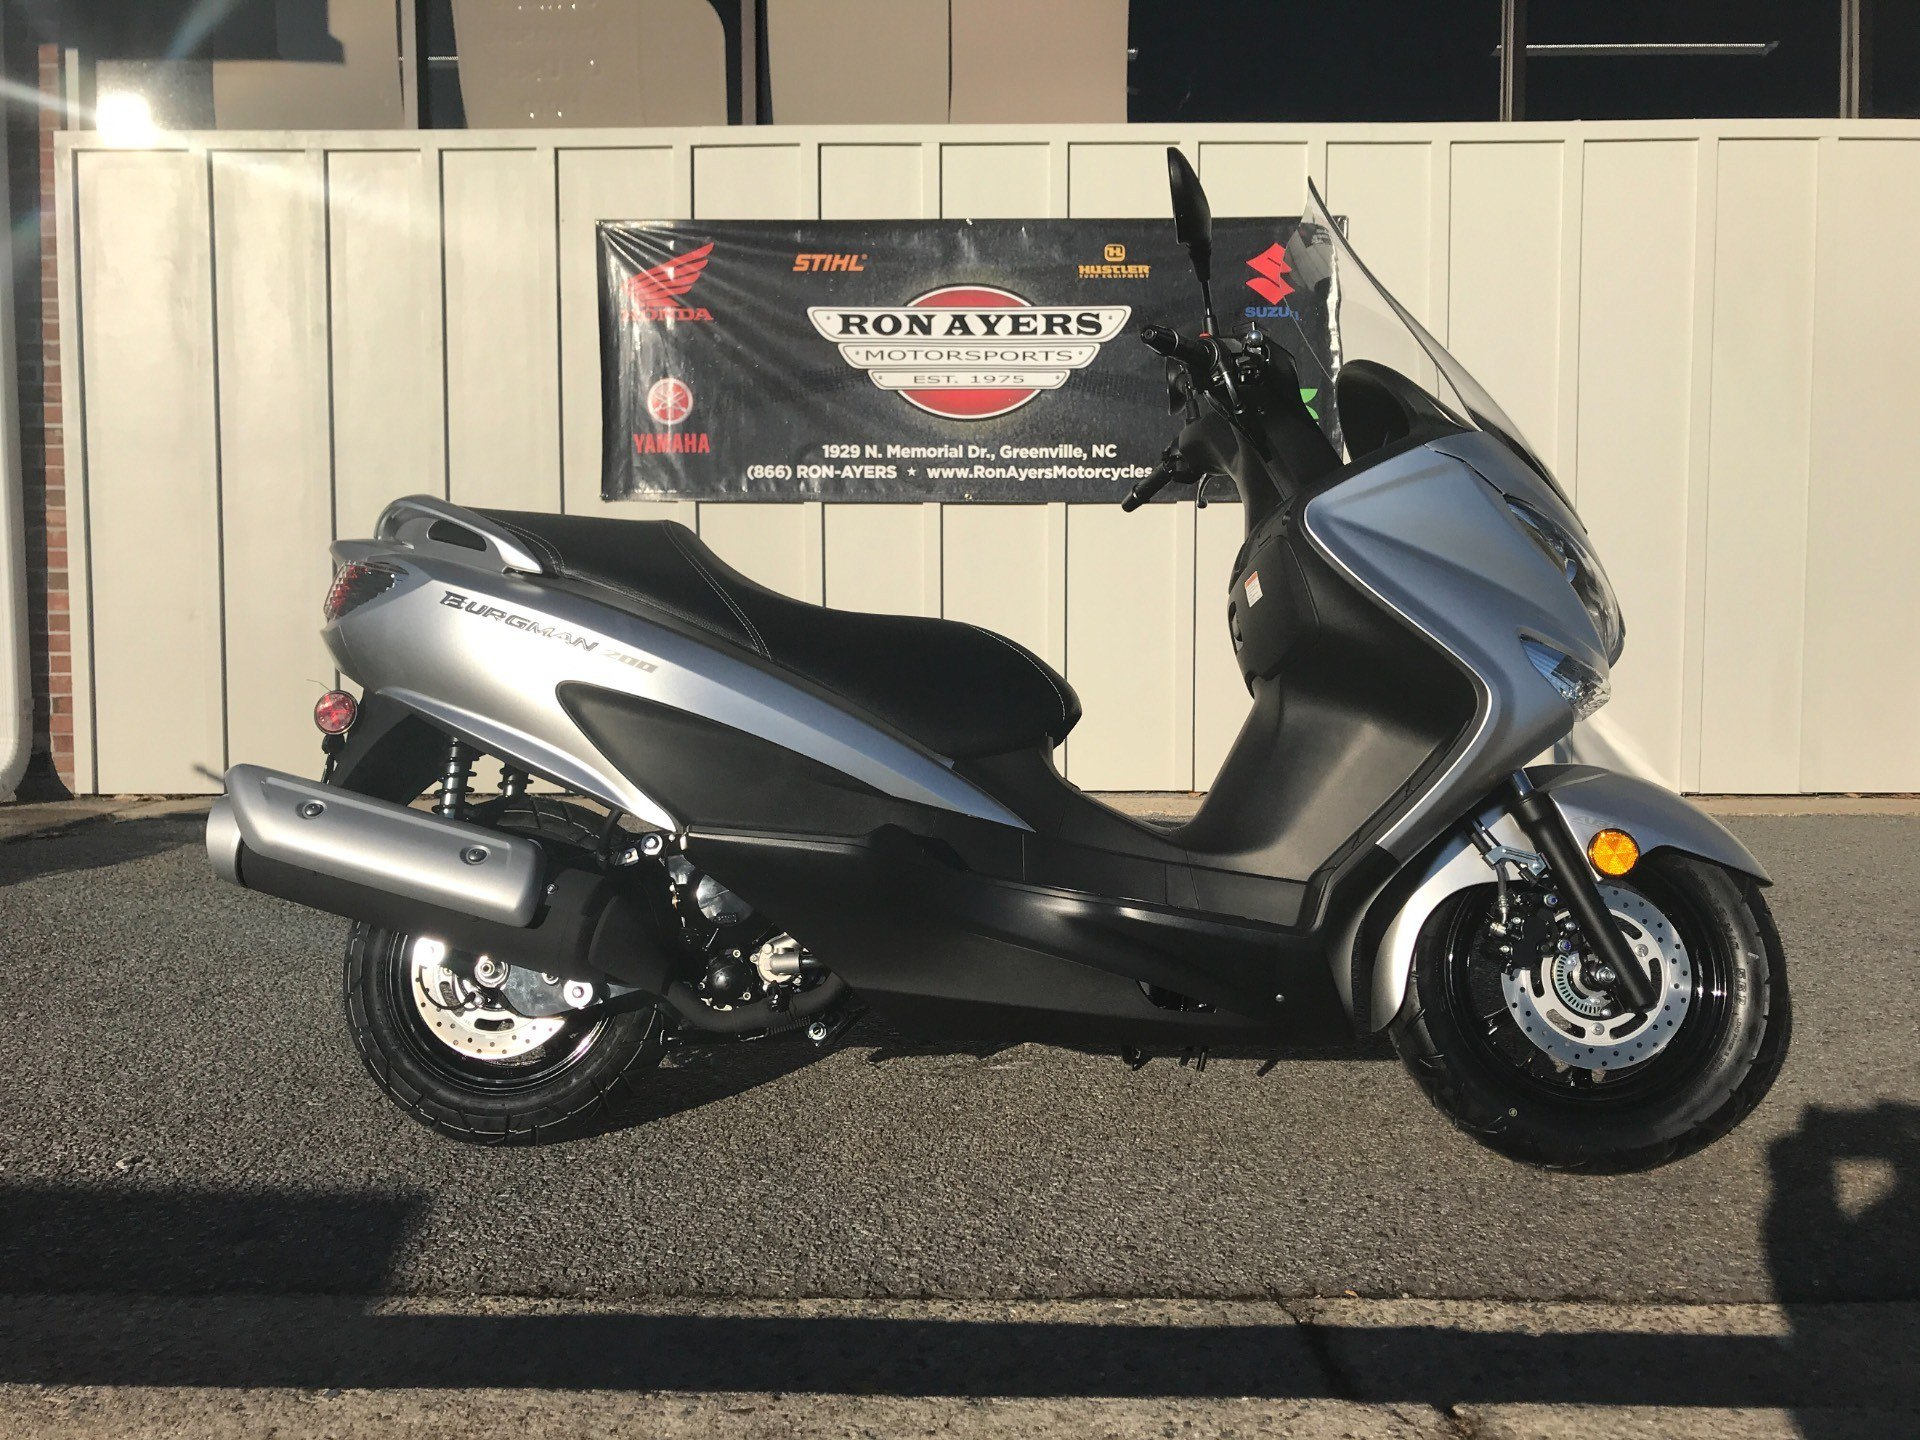 Scooters For Sale Greenville Nc >> New 2018 Suzuki Burgman 200 Scooters In Greenville Nc Stock